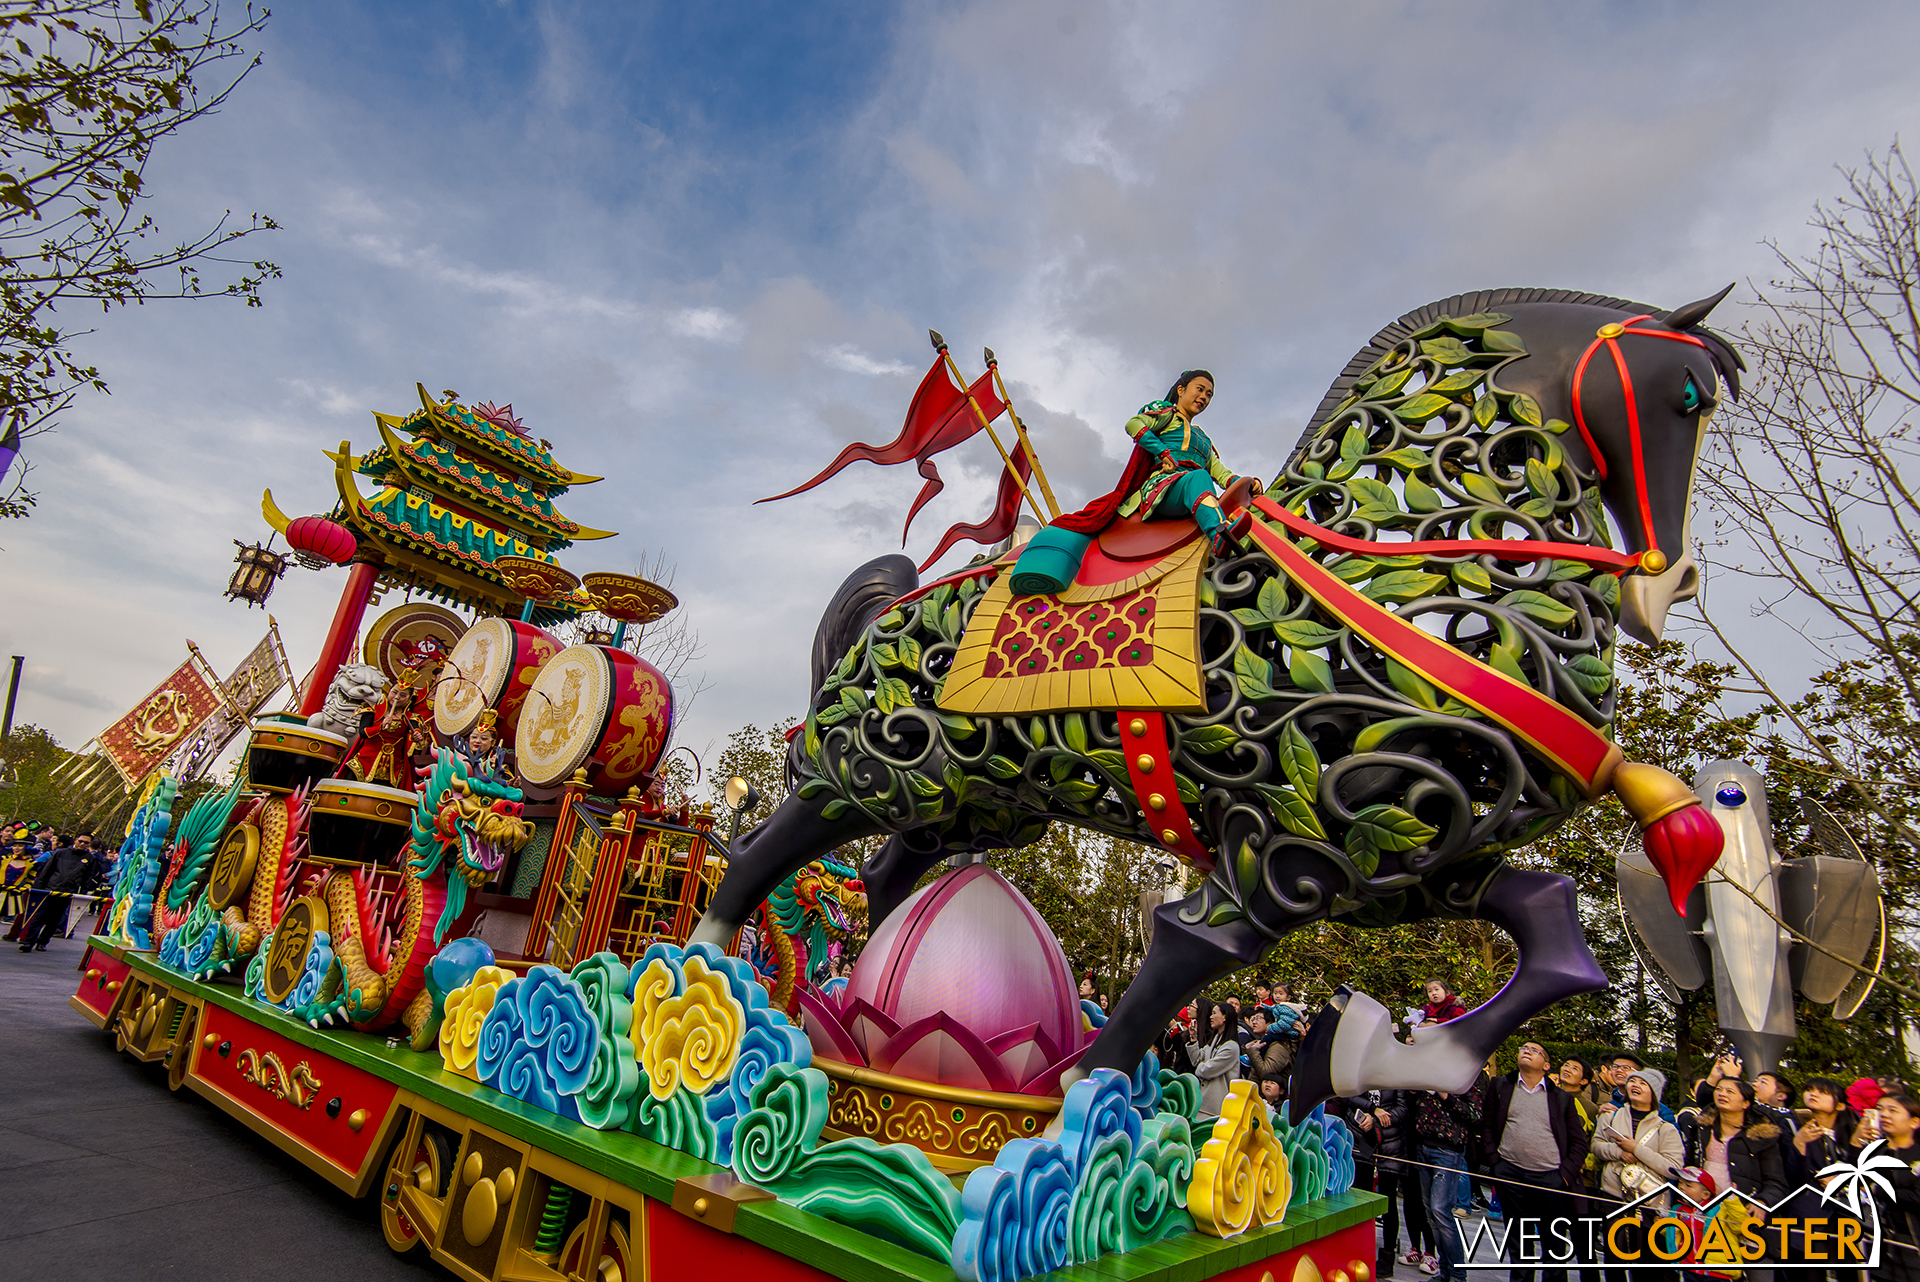 The Mulan float is among the most impressive in Mickey's Storybook Express.